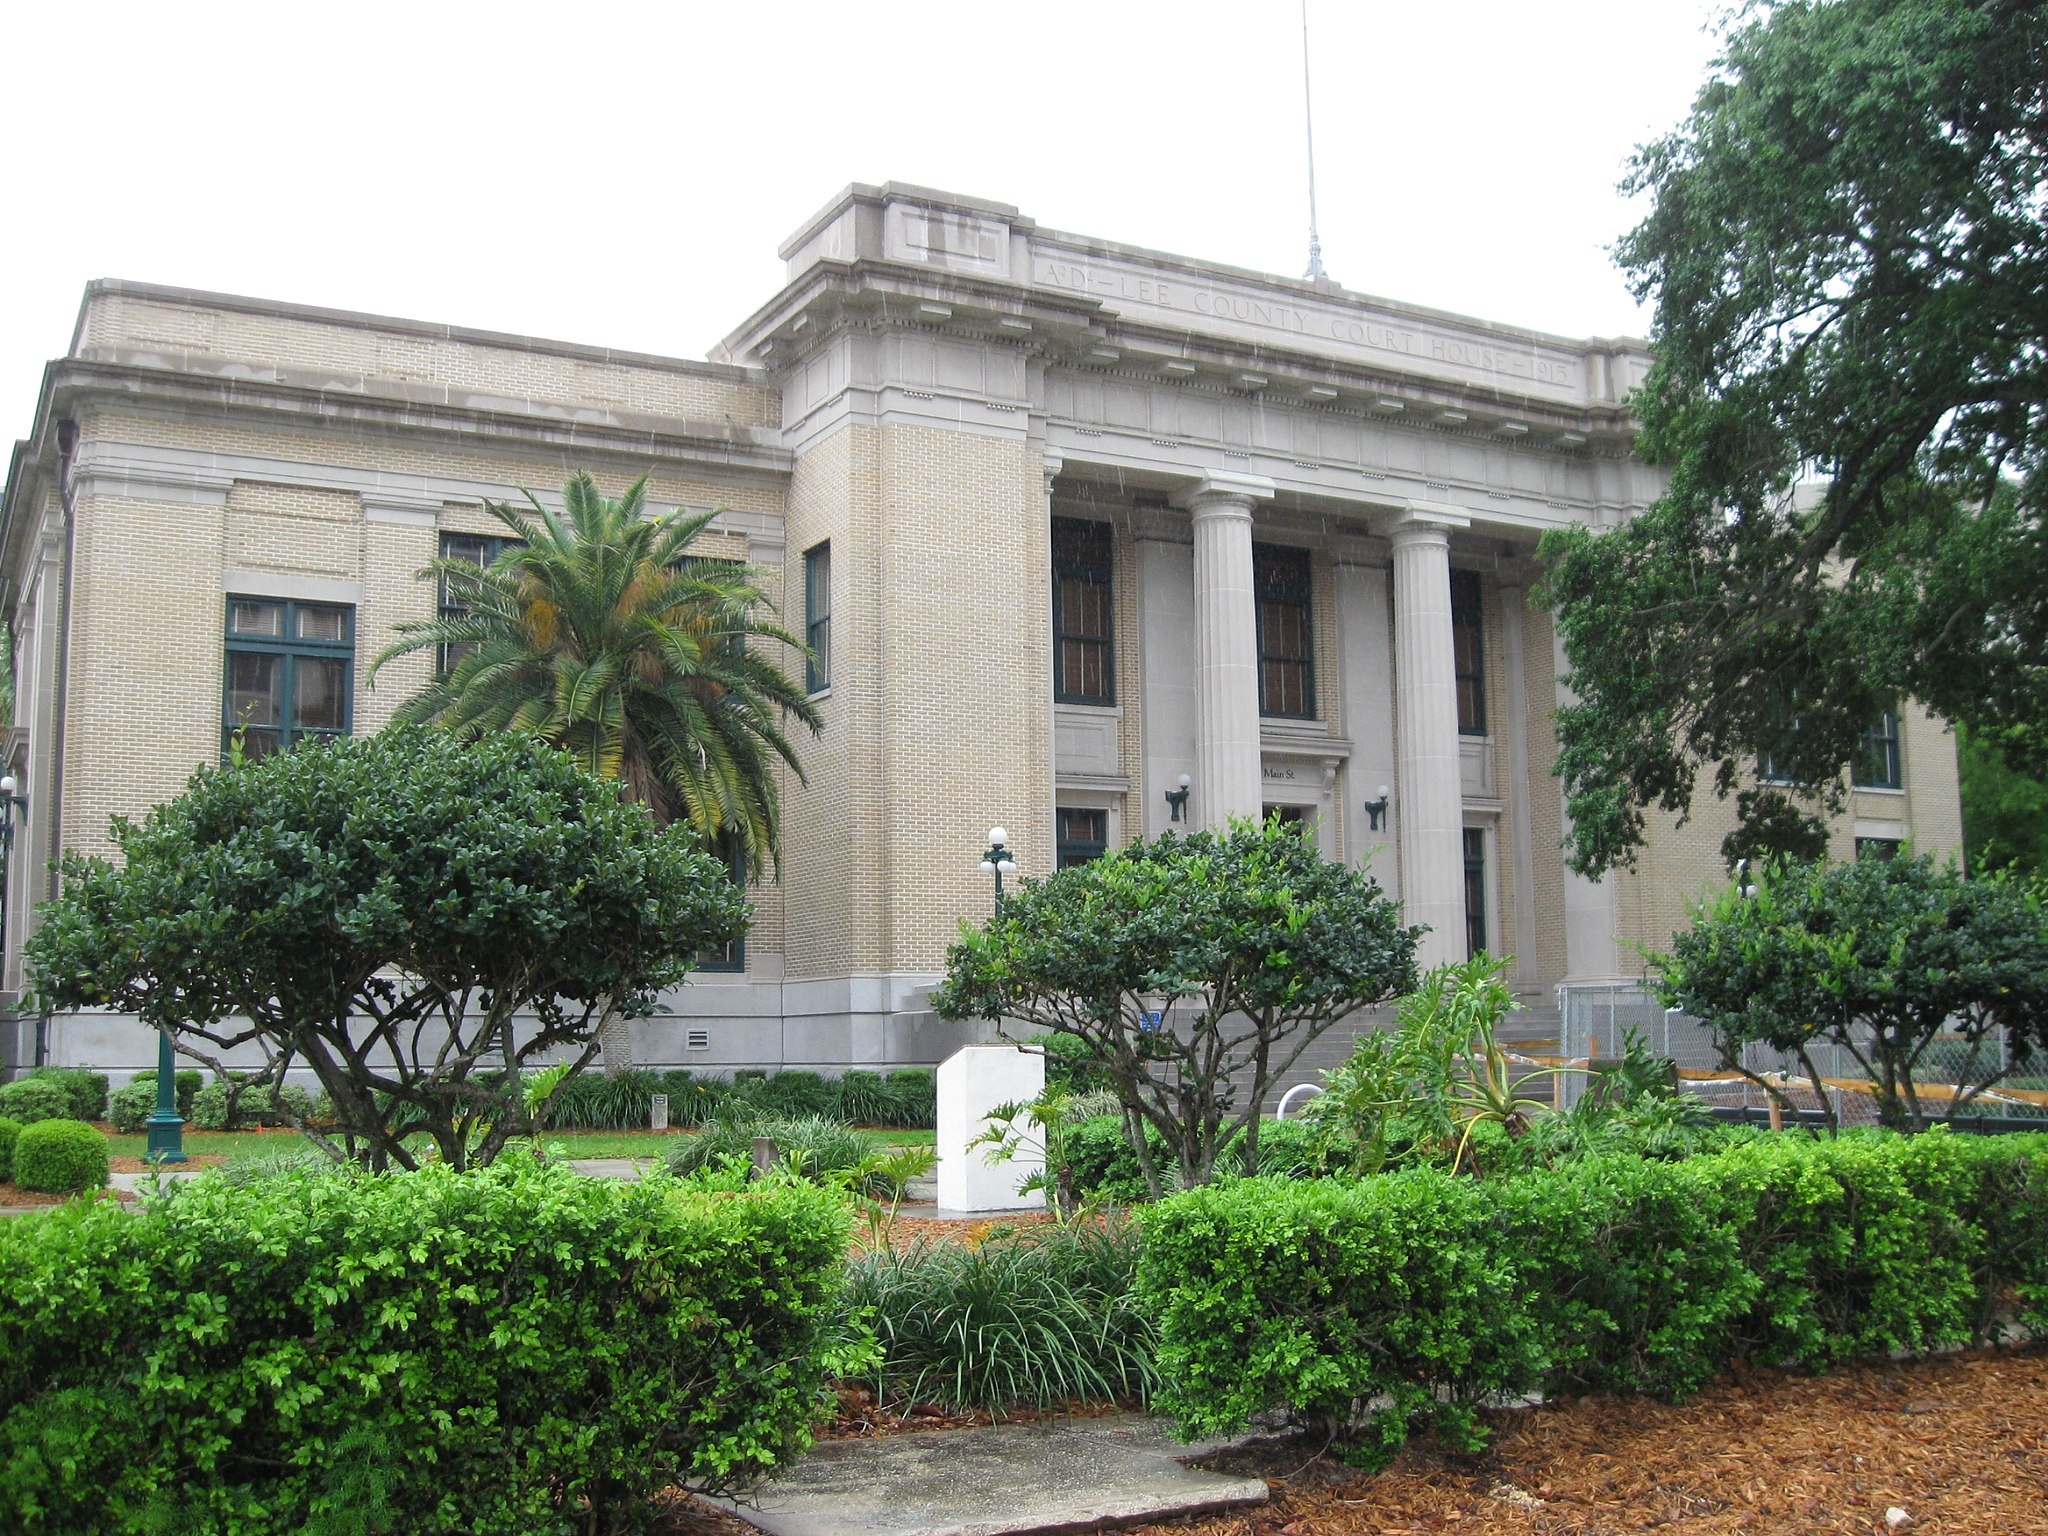 Ft. Myers, FL, Courthouse, Lee County, 04-18-2010 (15)